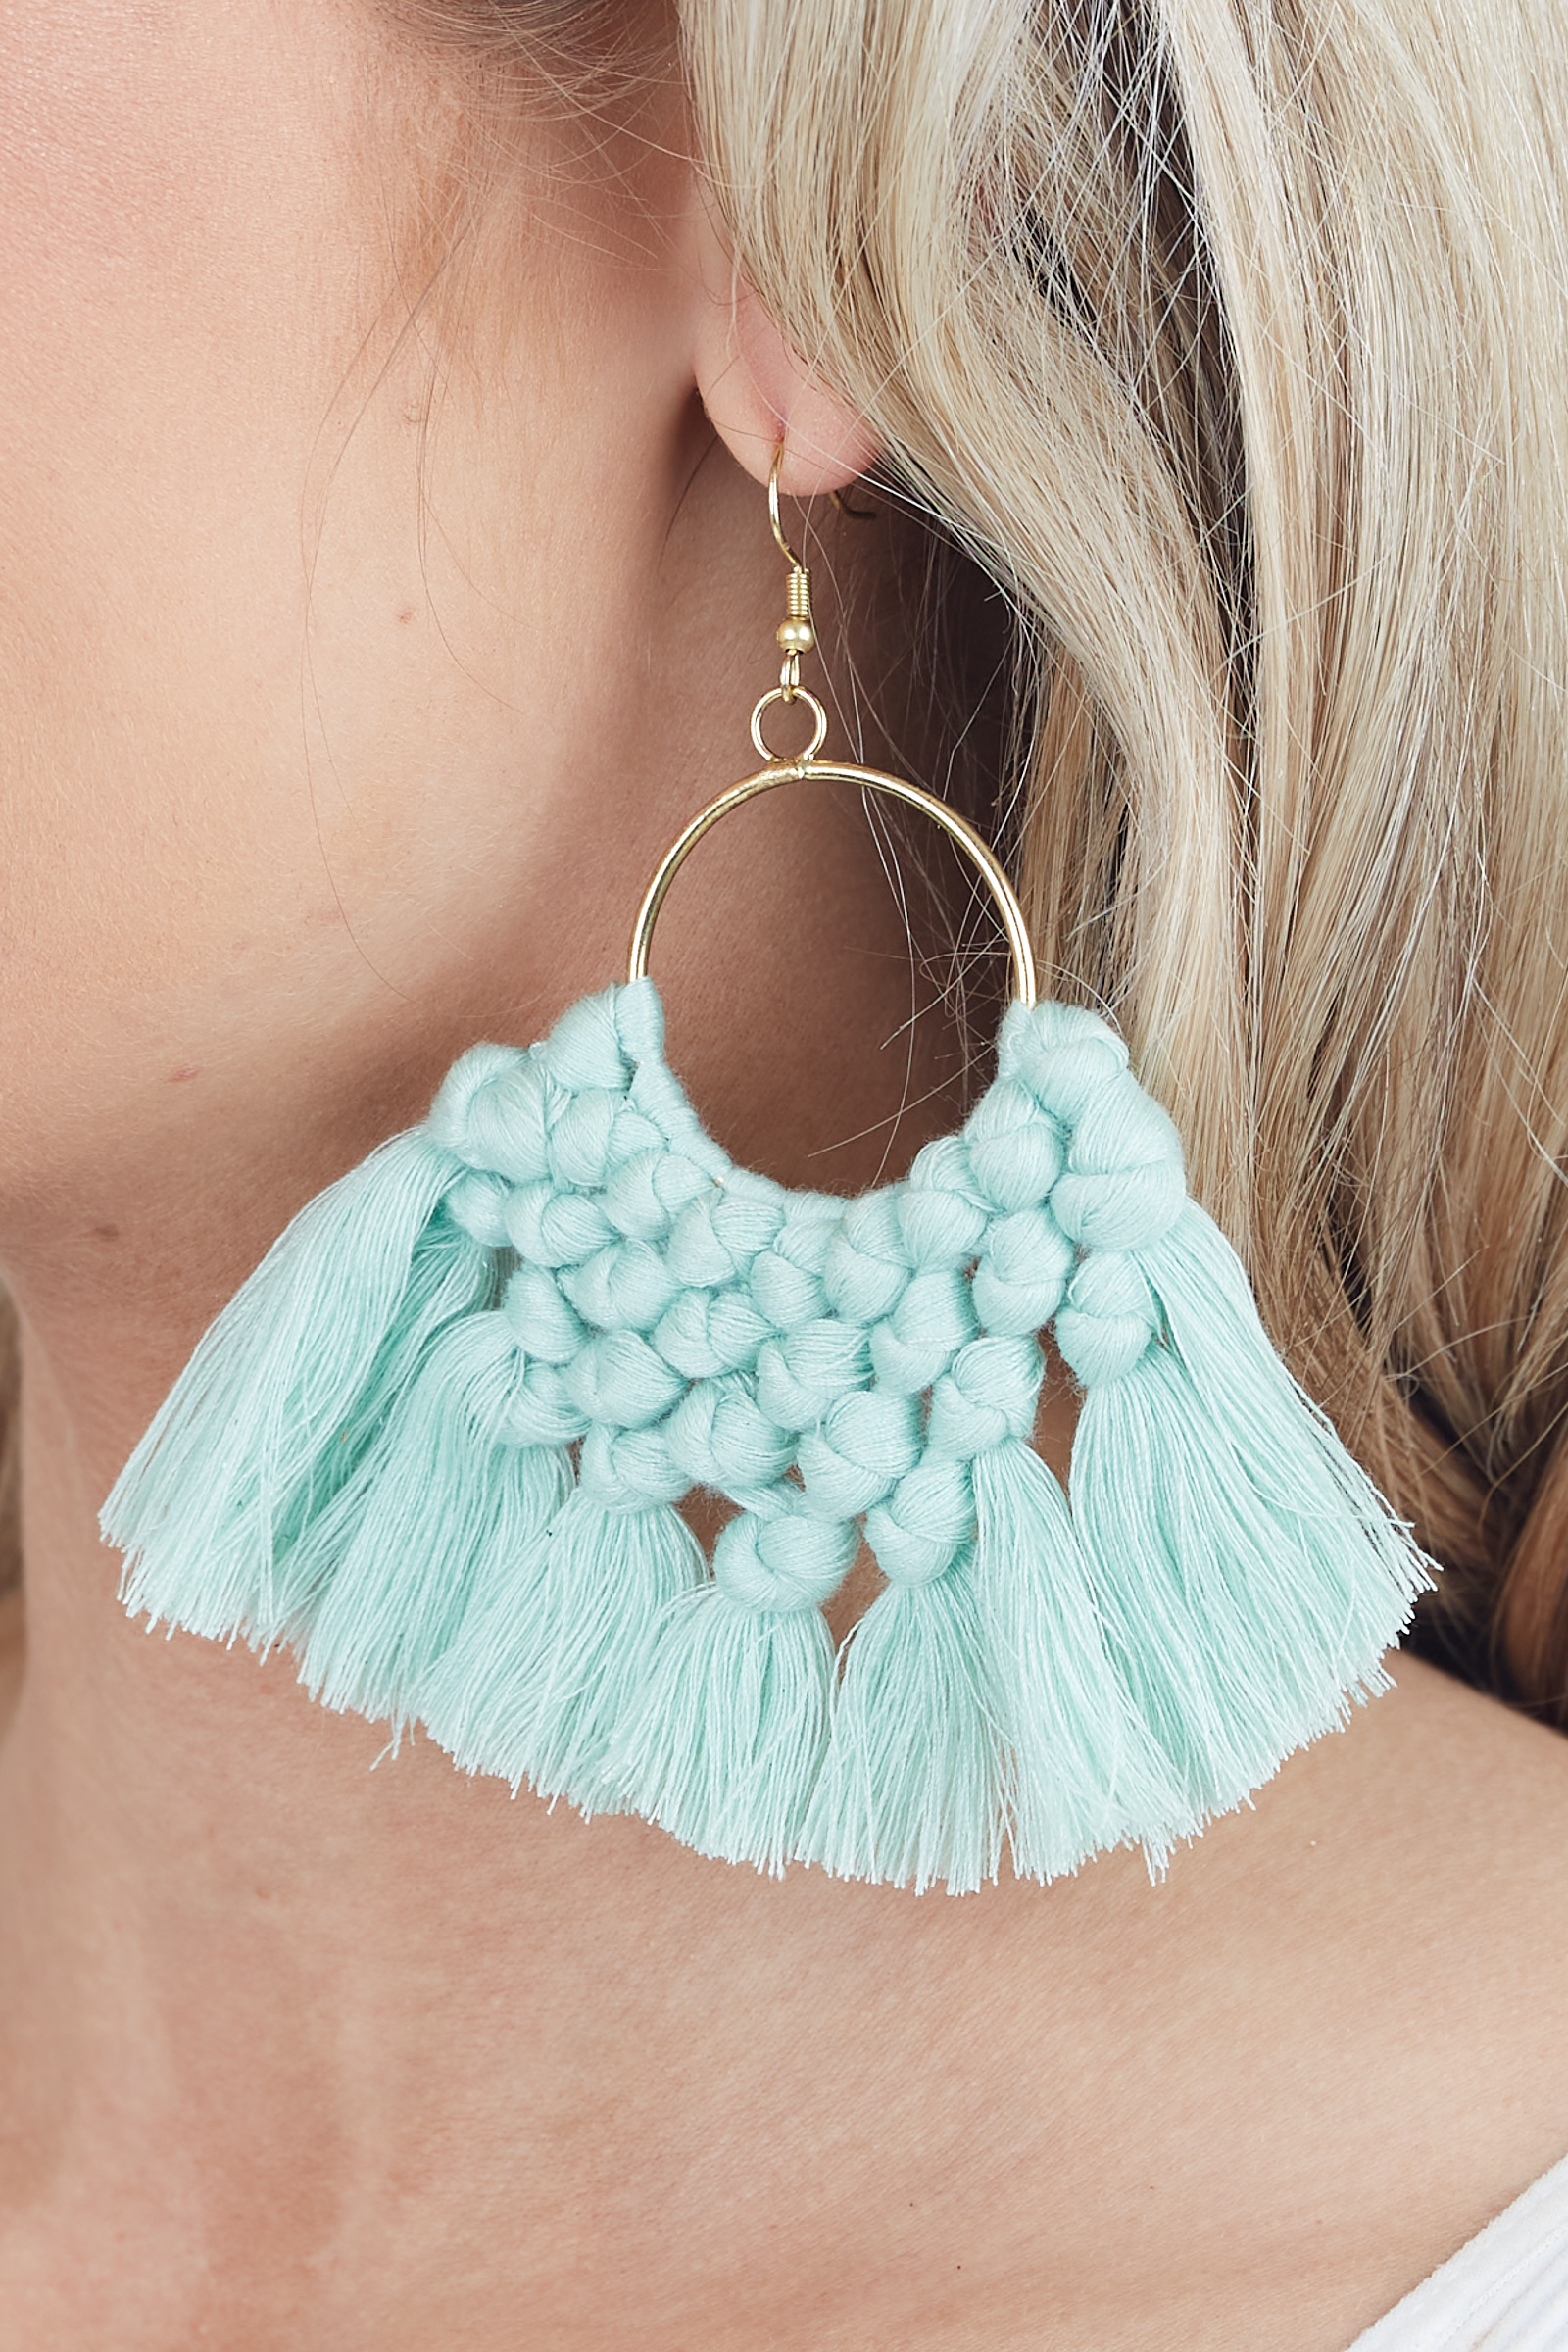 Gold Hoop Earrings with Mint Tassels and Woven Details